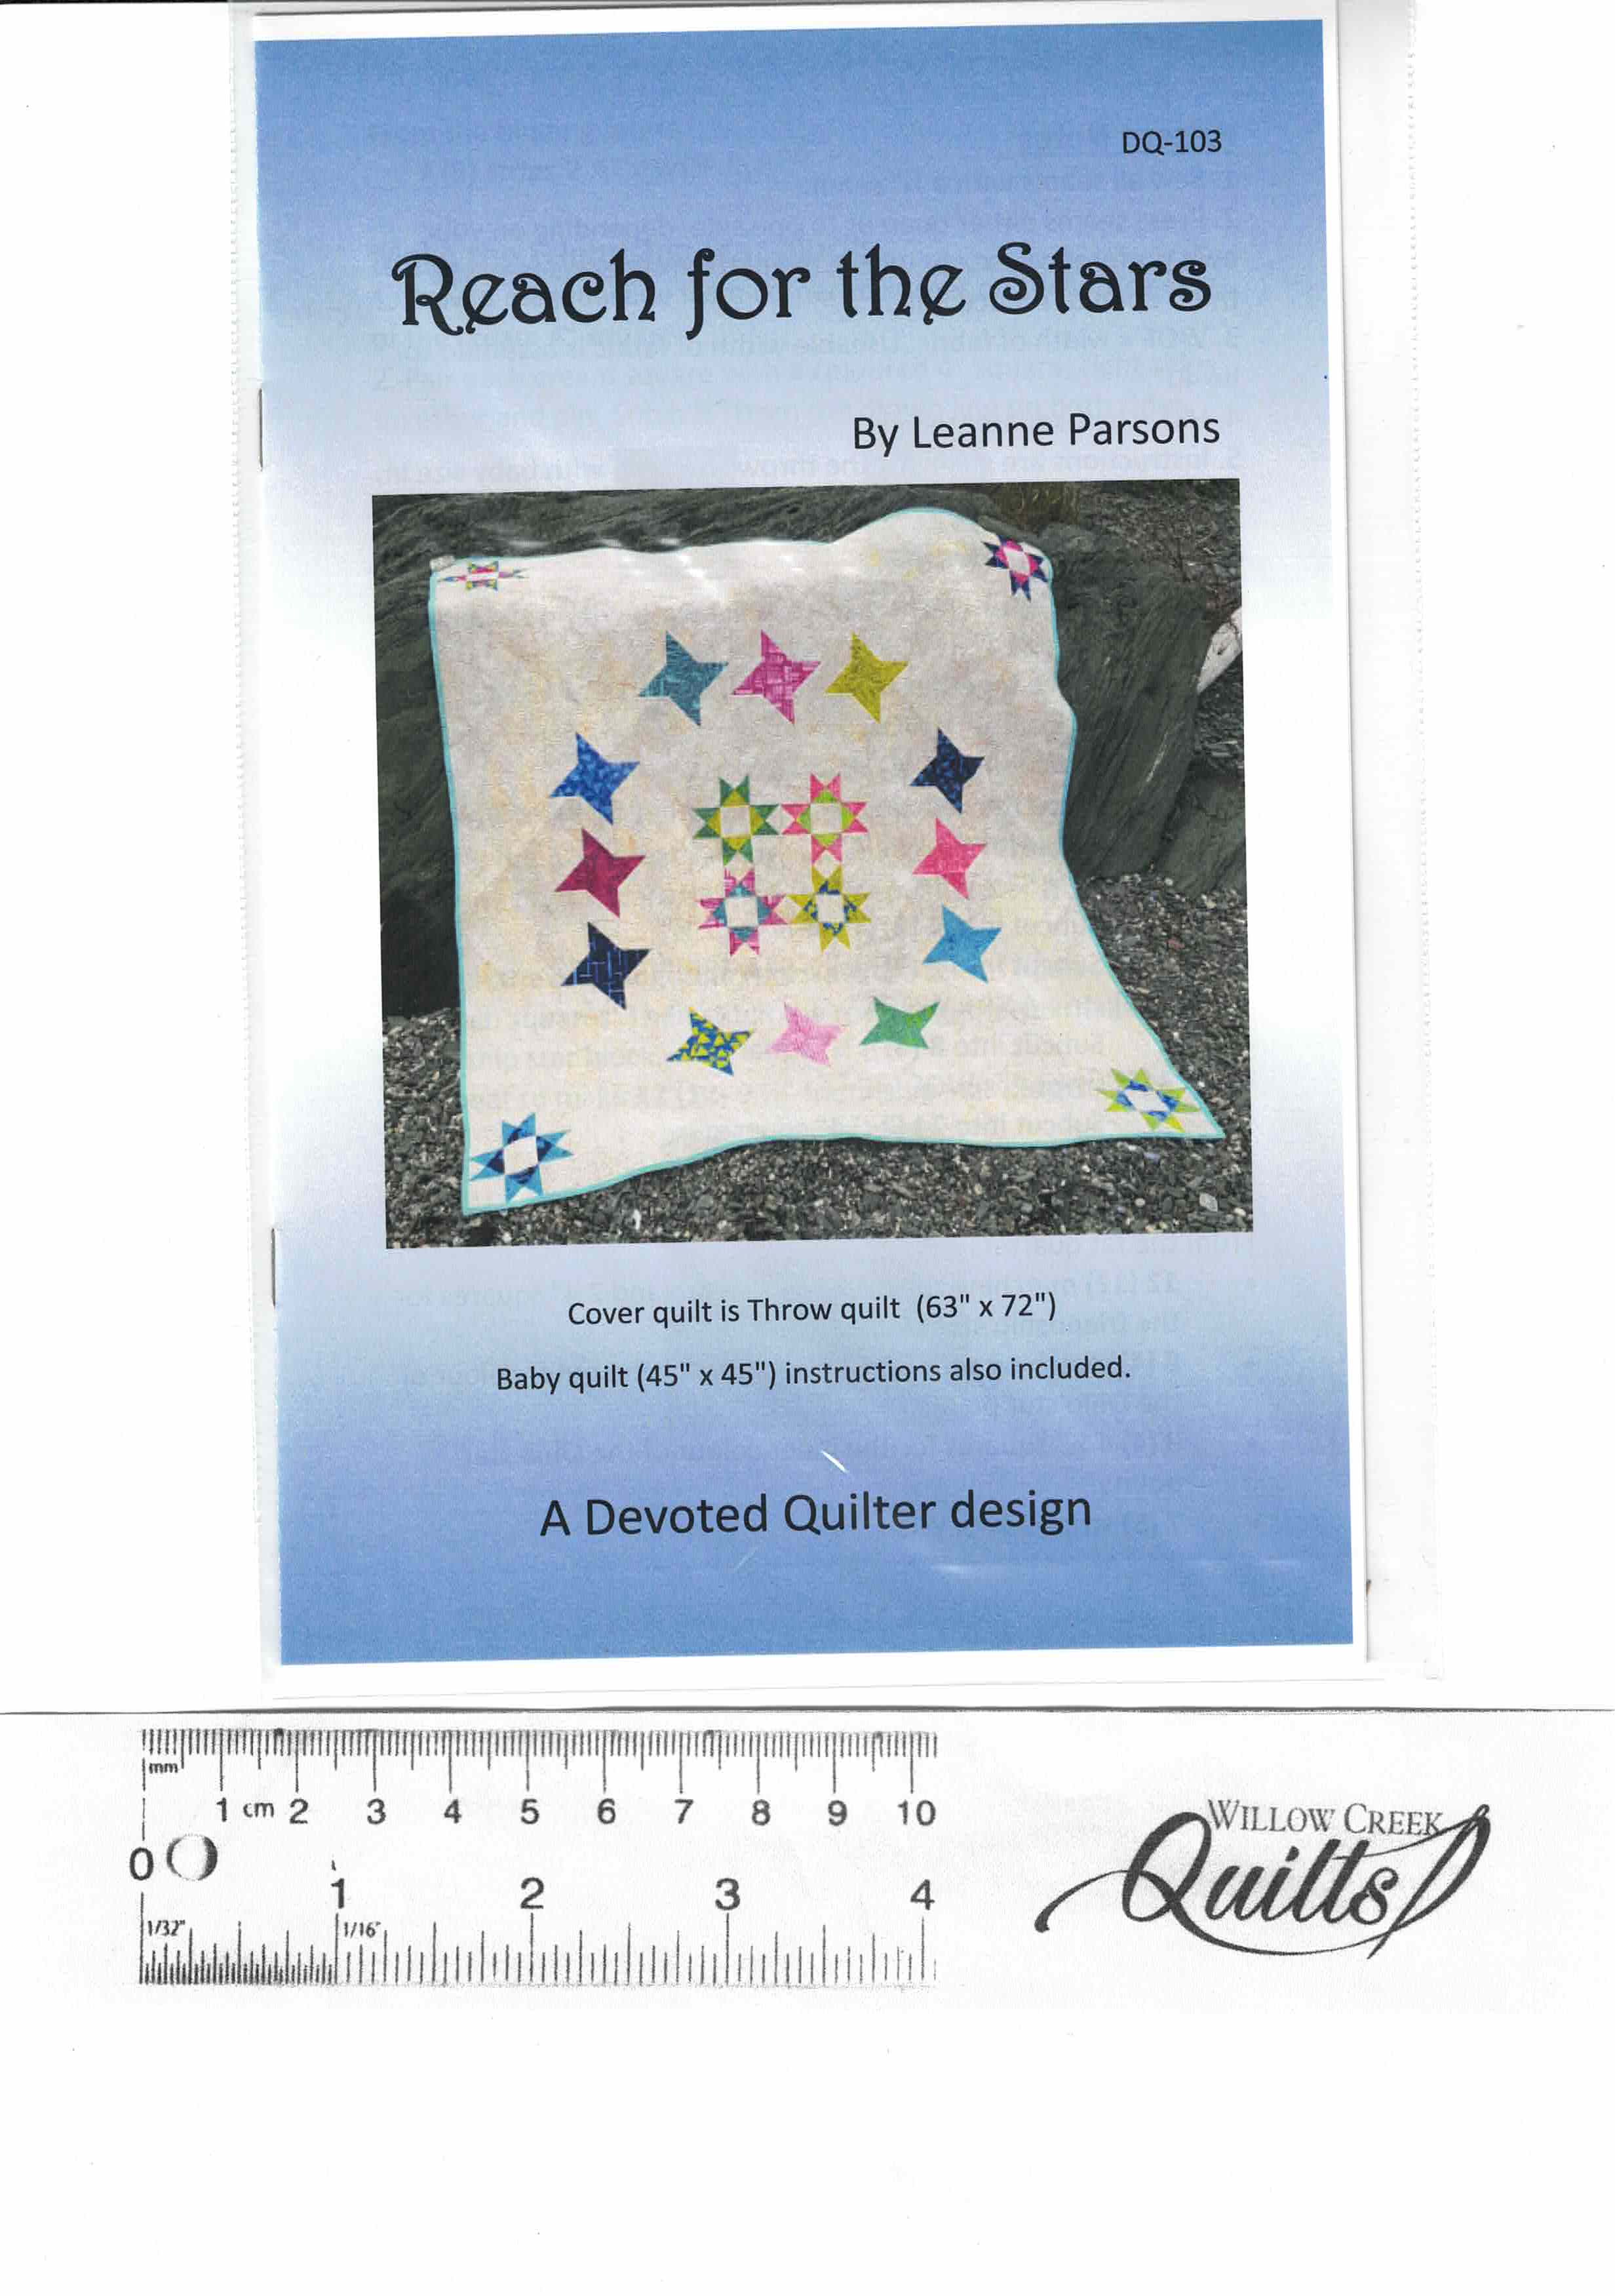 Reach for the Stars pattern - DQ103